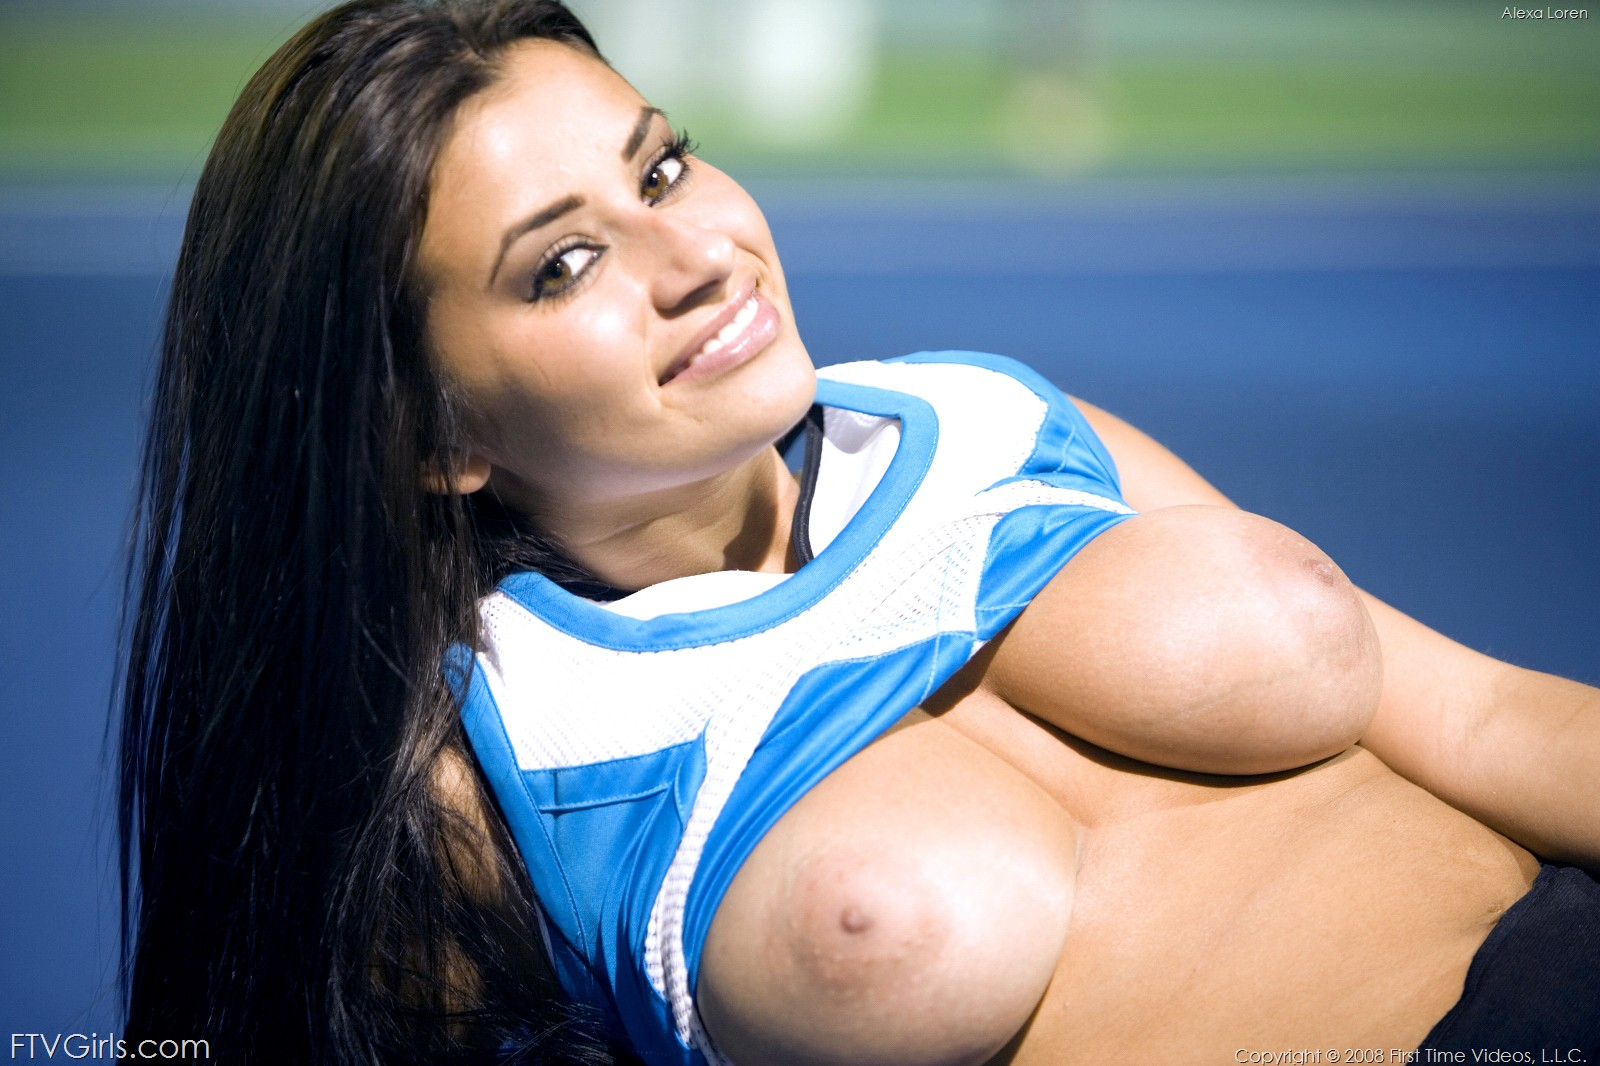 Alexa Loren, brunette, busty, flash, tennis, outdoors